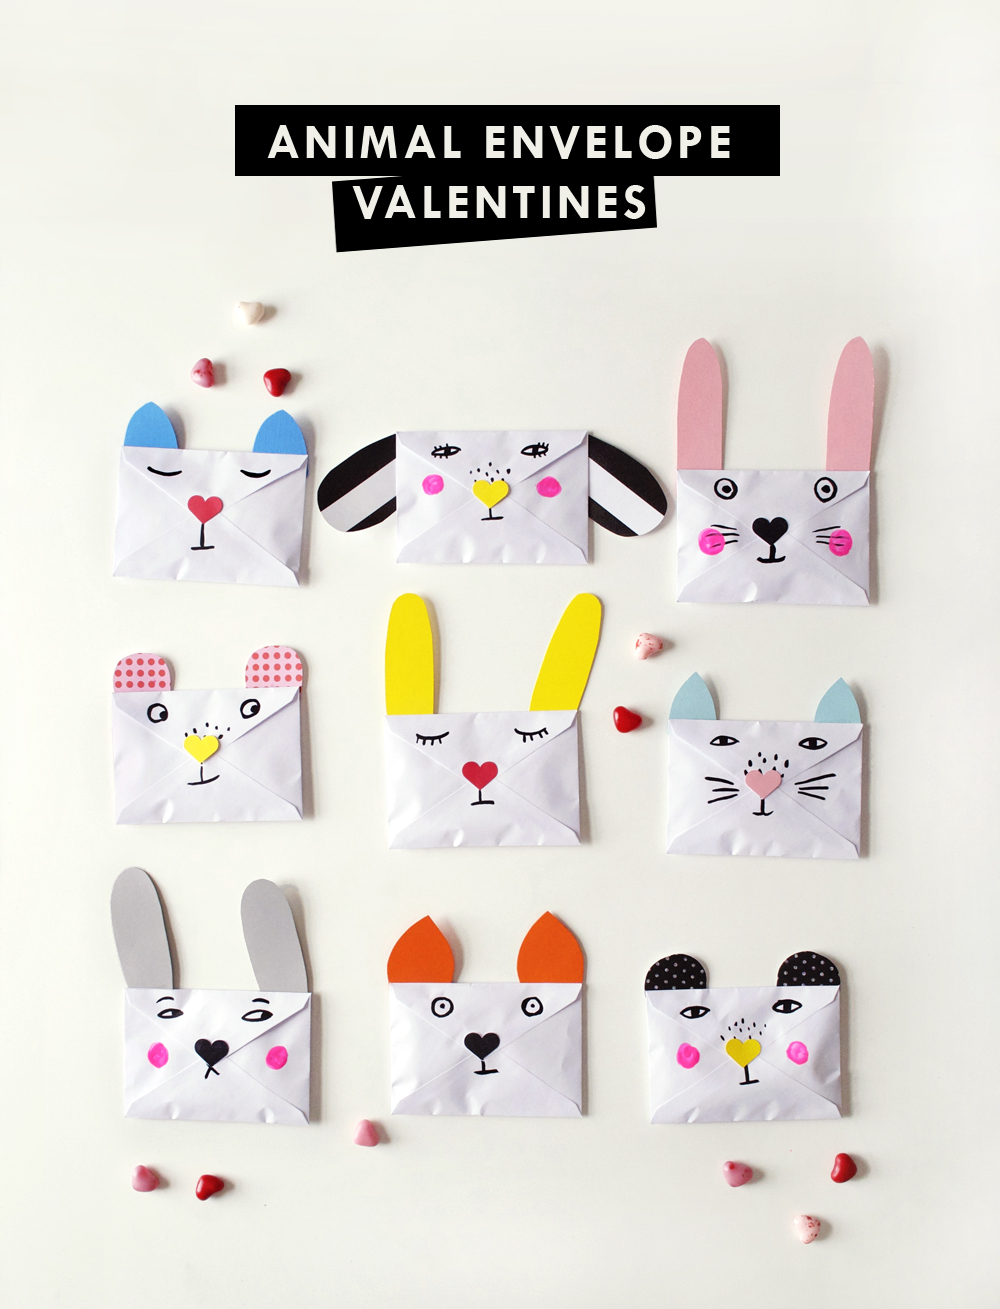 DIY Animal Envelope Valentines